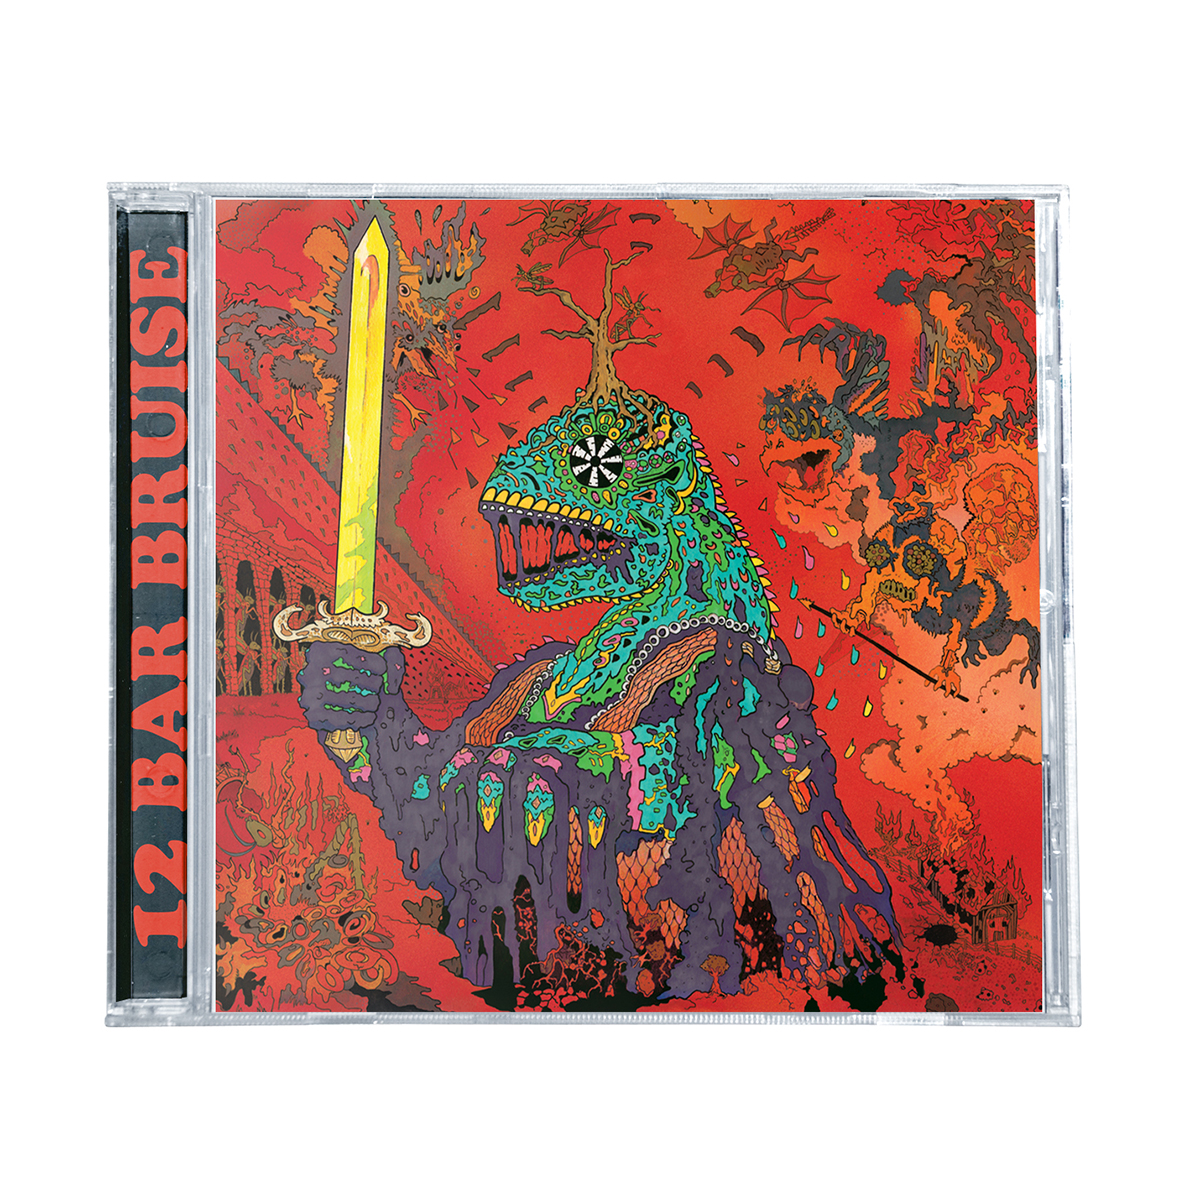 King Gizzard & The Wizard Lizard - 12 Bar Bruise CD